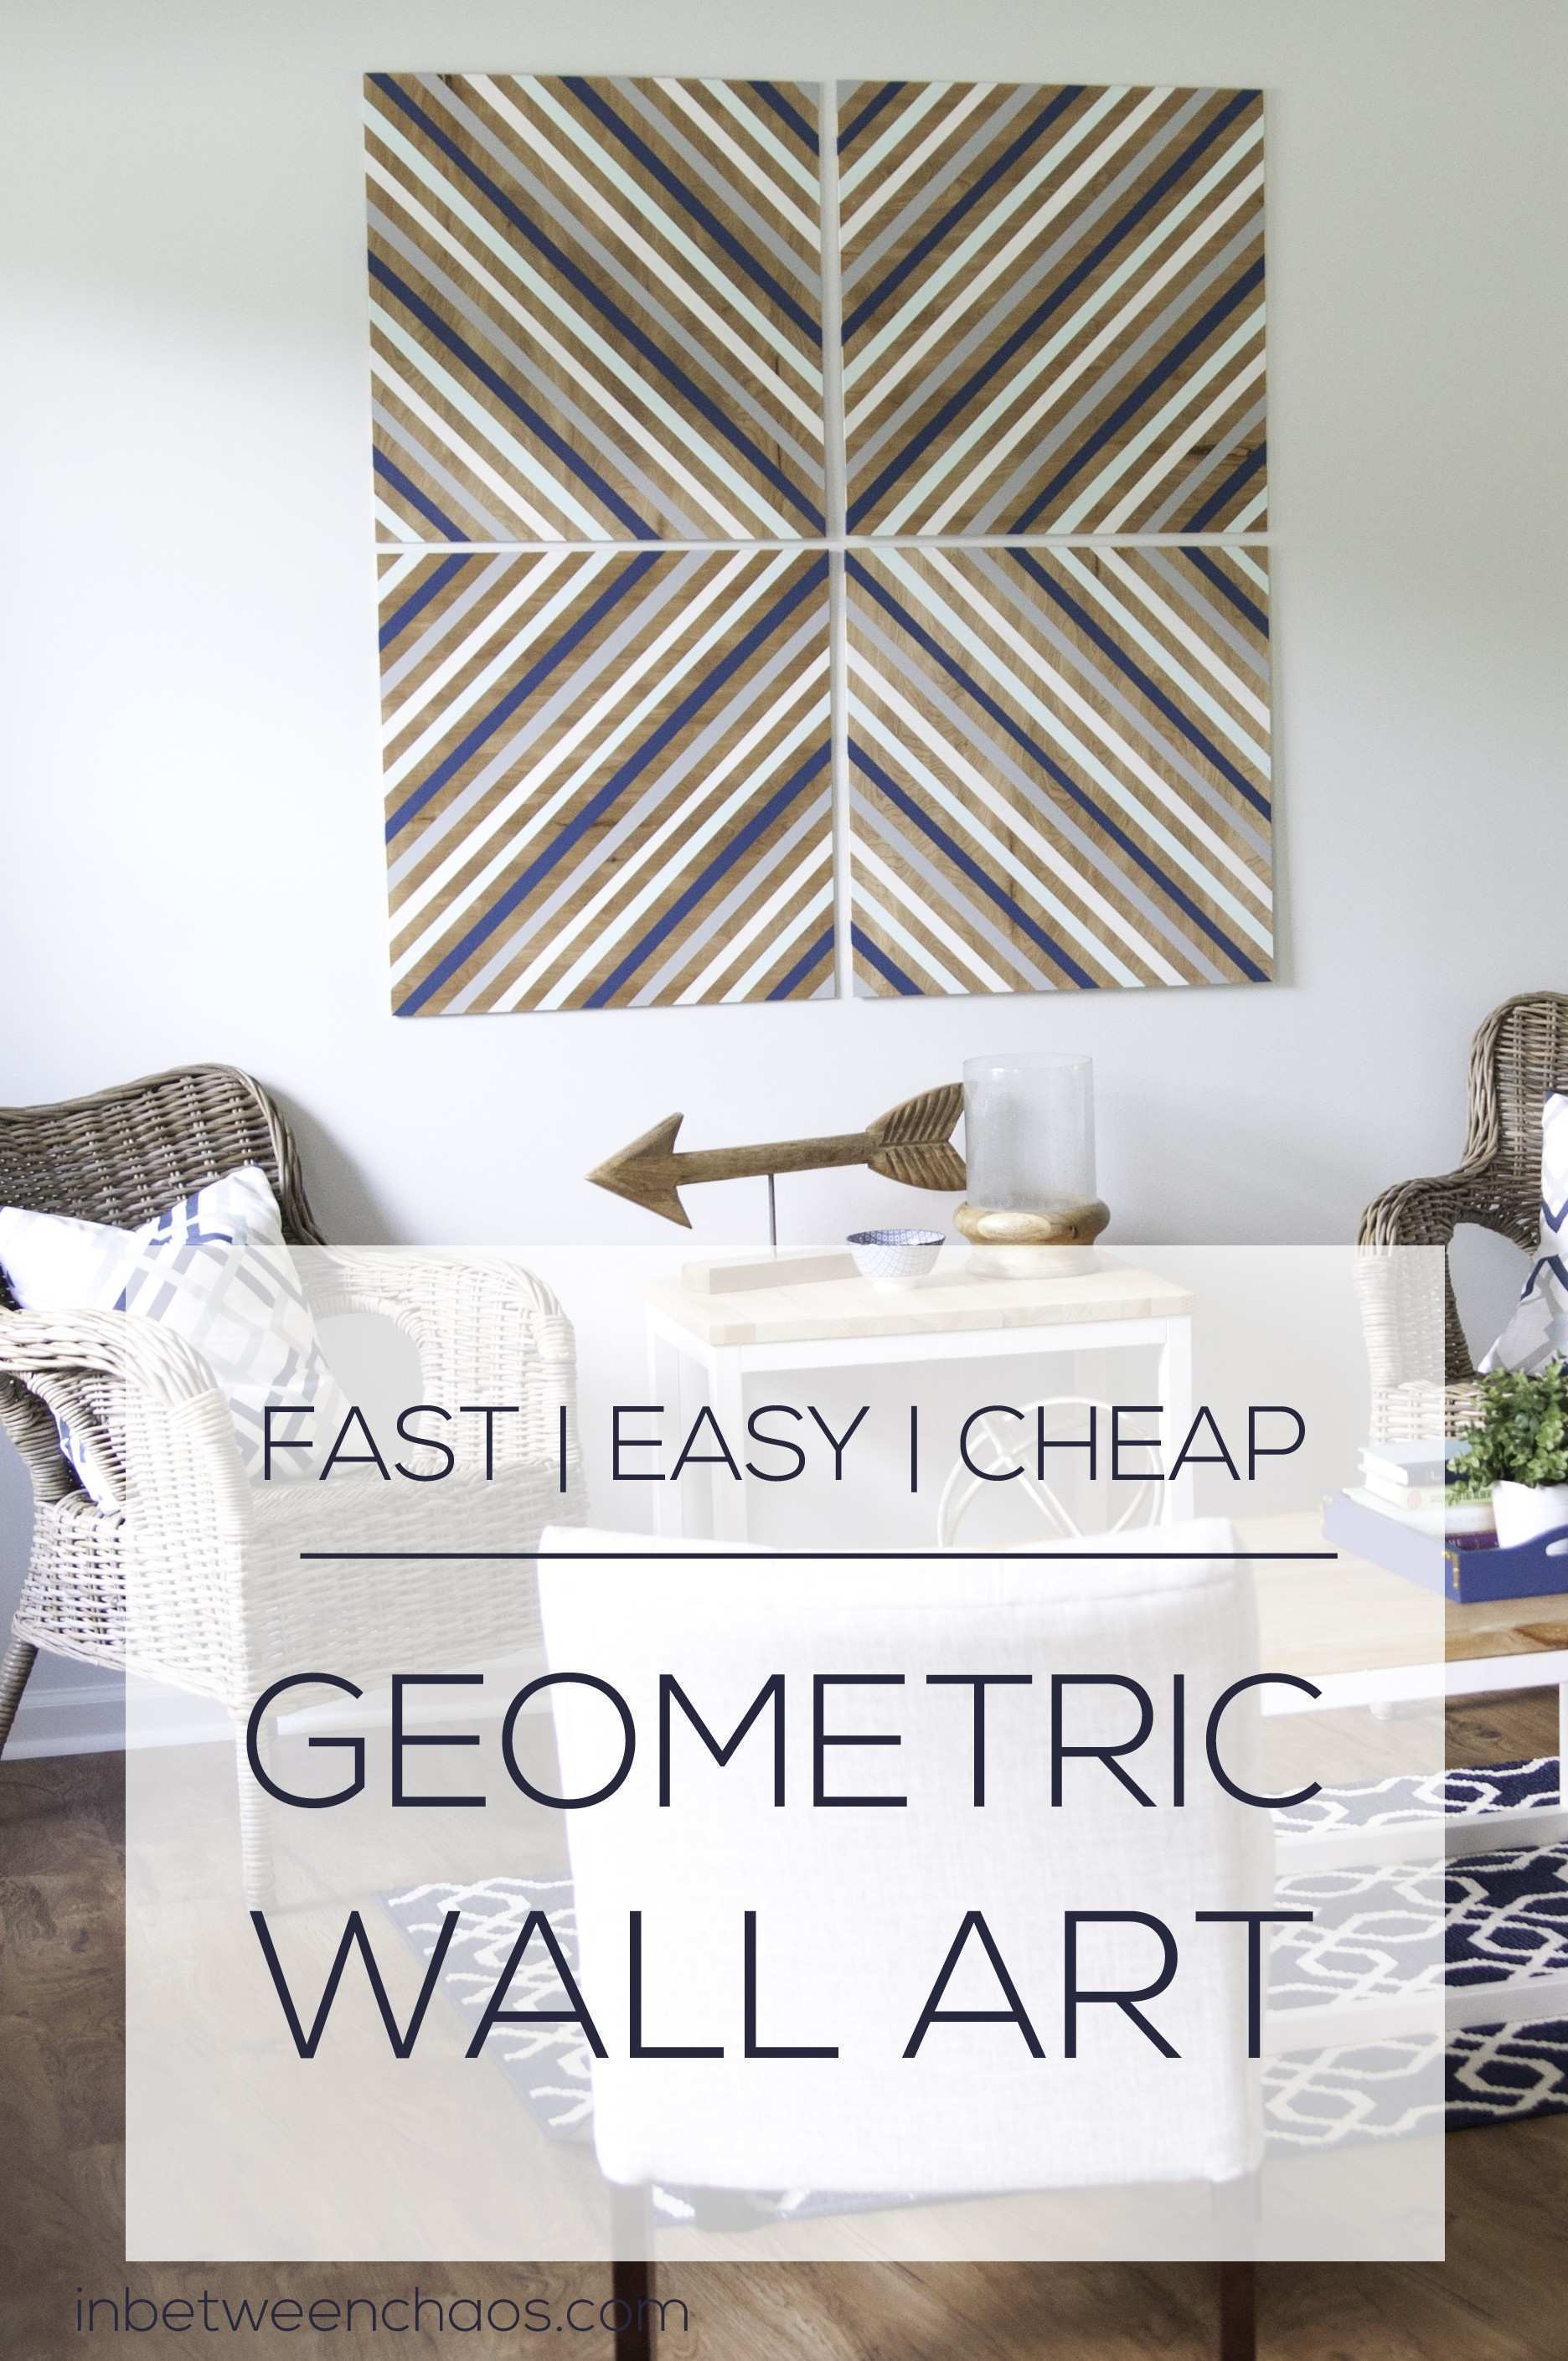 Easy and Cheap Big Wall Art